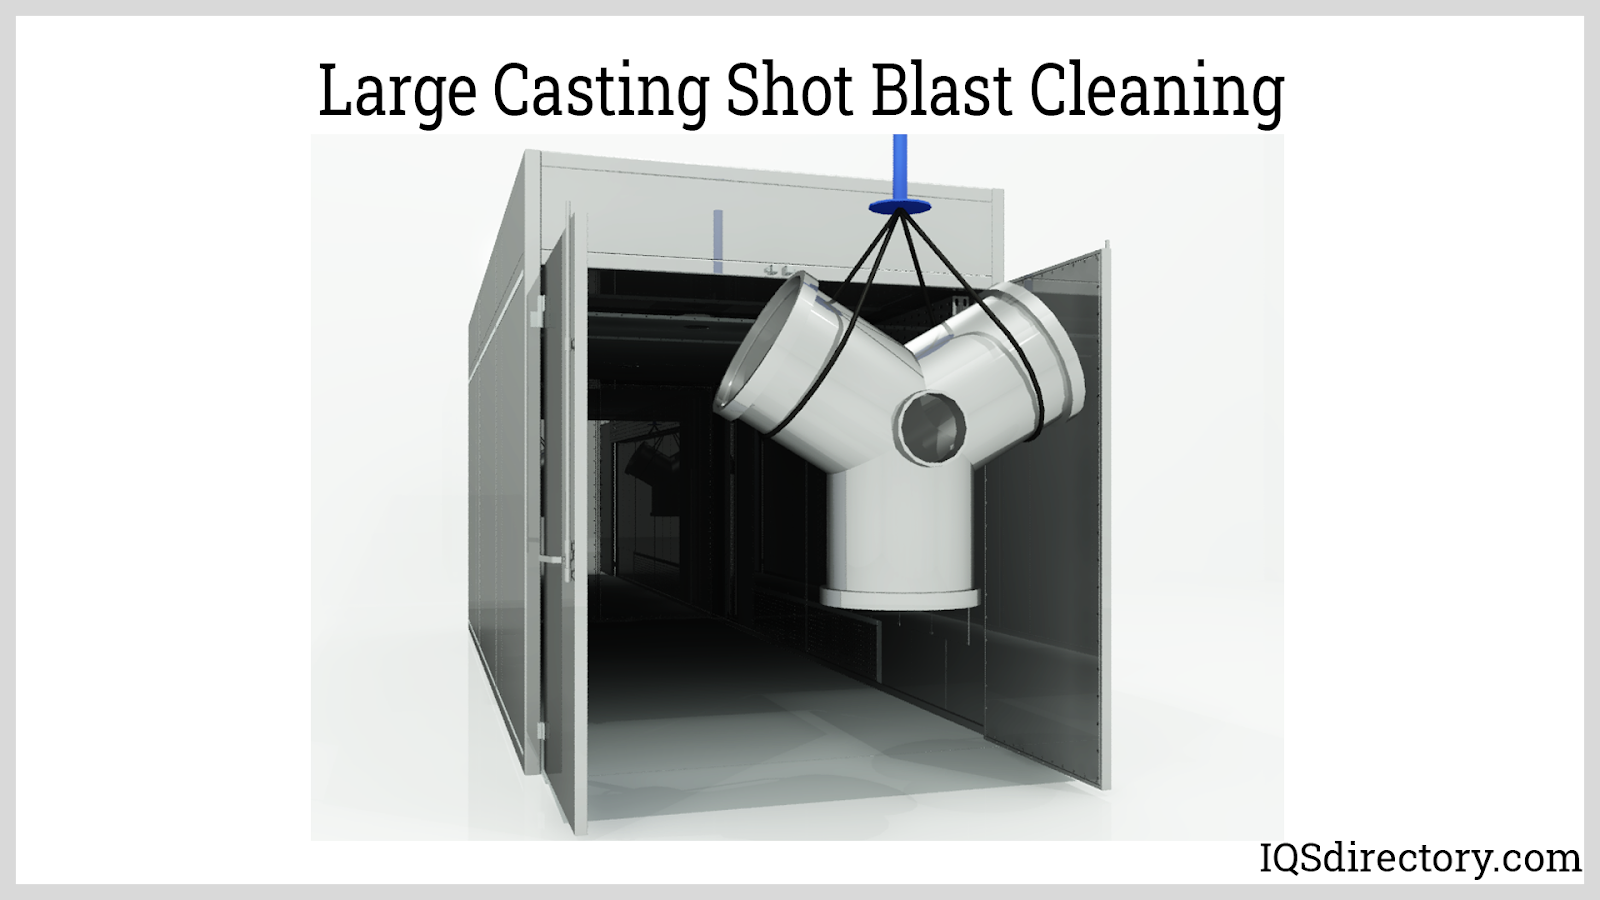 Large Casting Shot Blast Cleaning